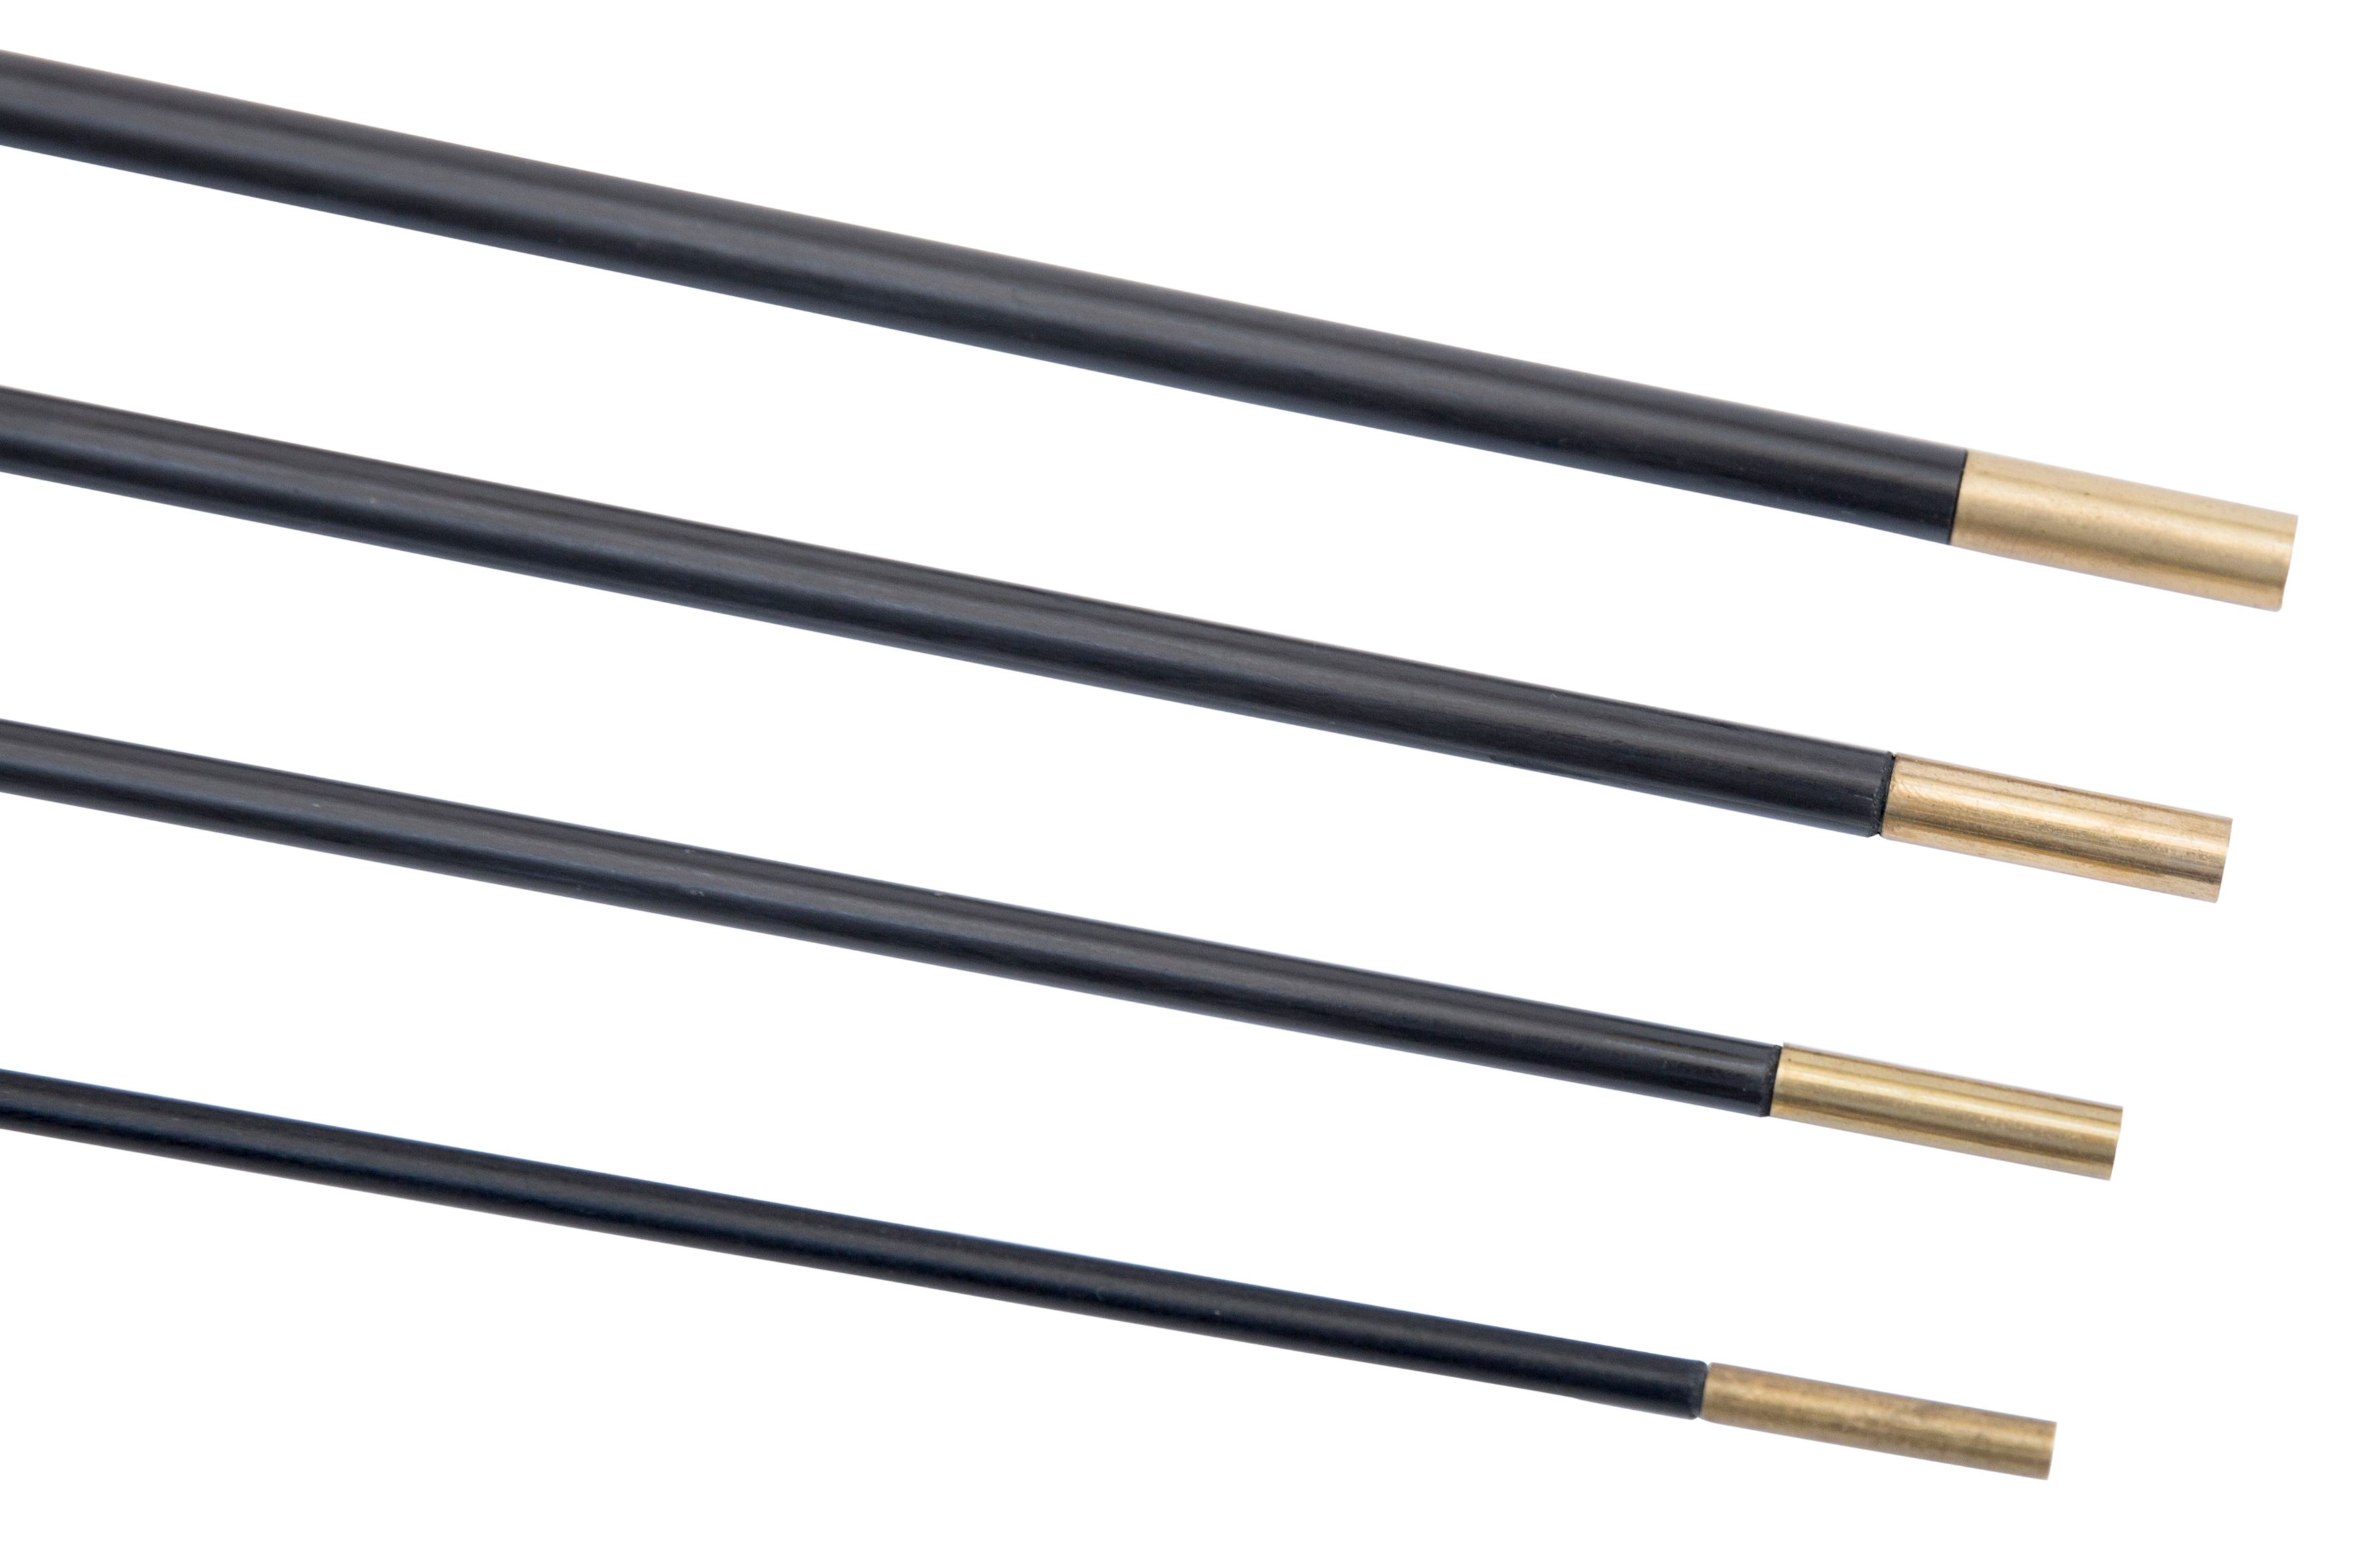 DAC 38242 Carbon Cleaning Rod 30 Cal